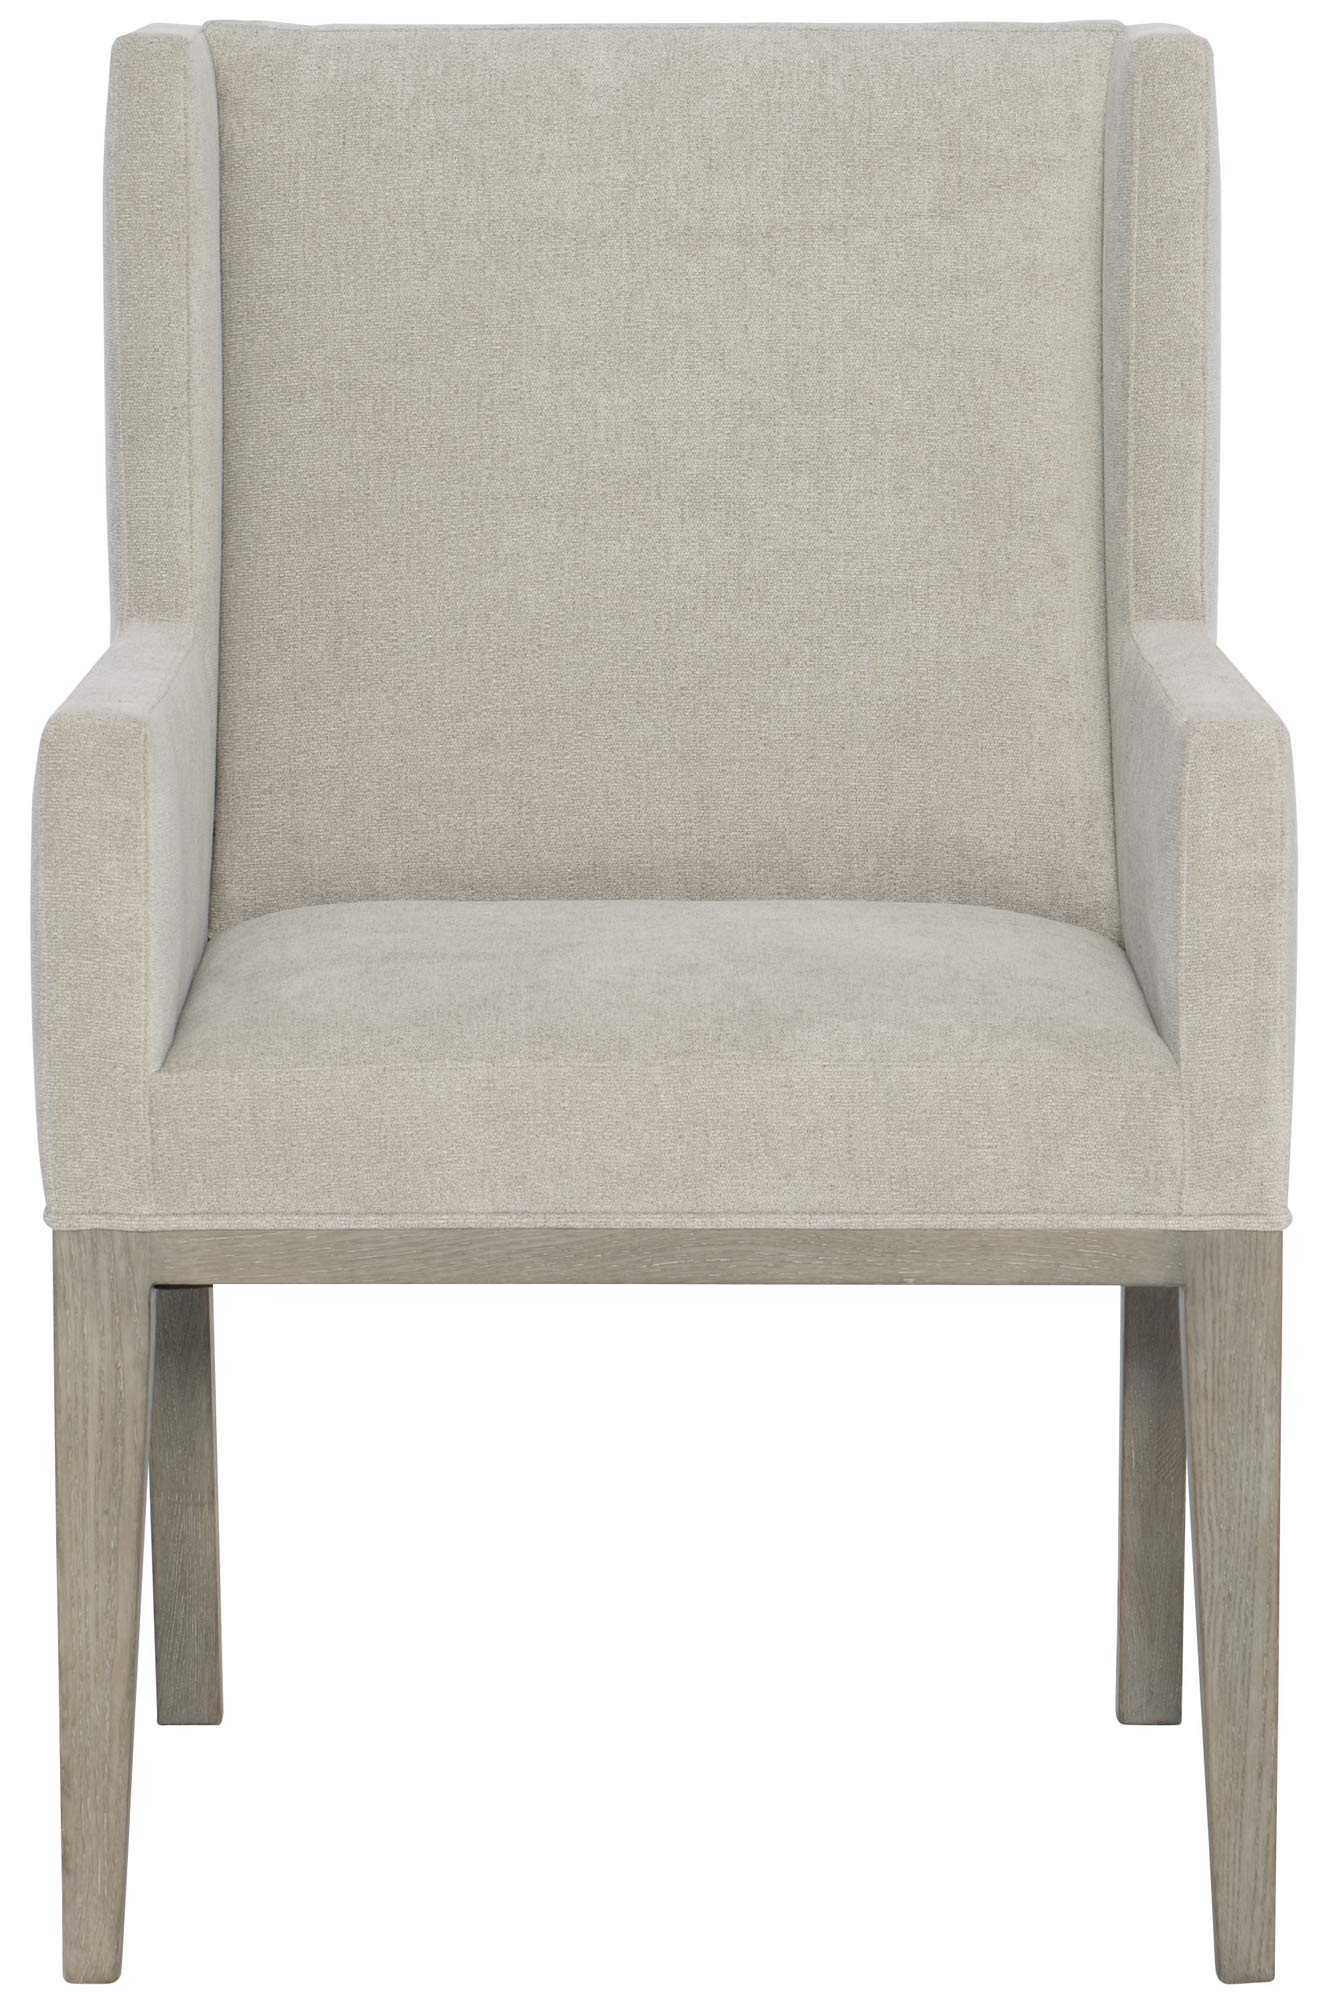 Upholstered Arm Chairs Upholstered Arm Chair Bernhardt